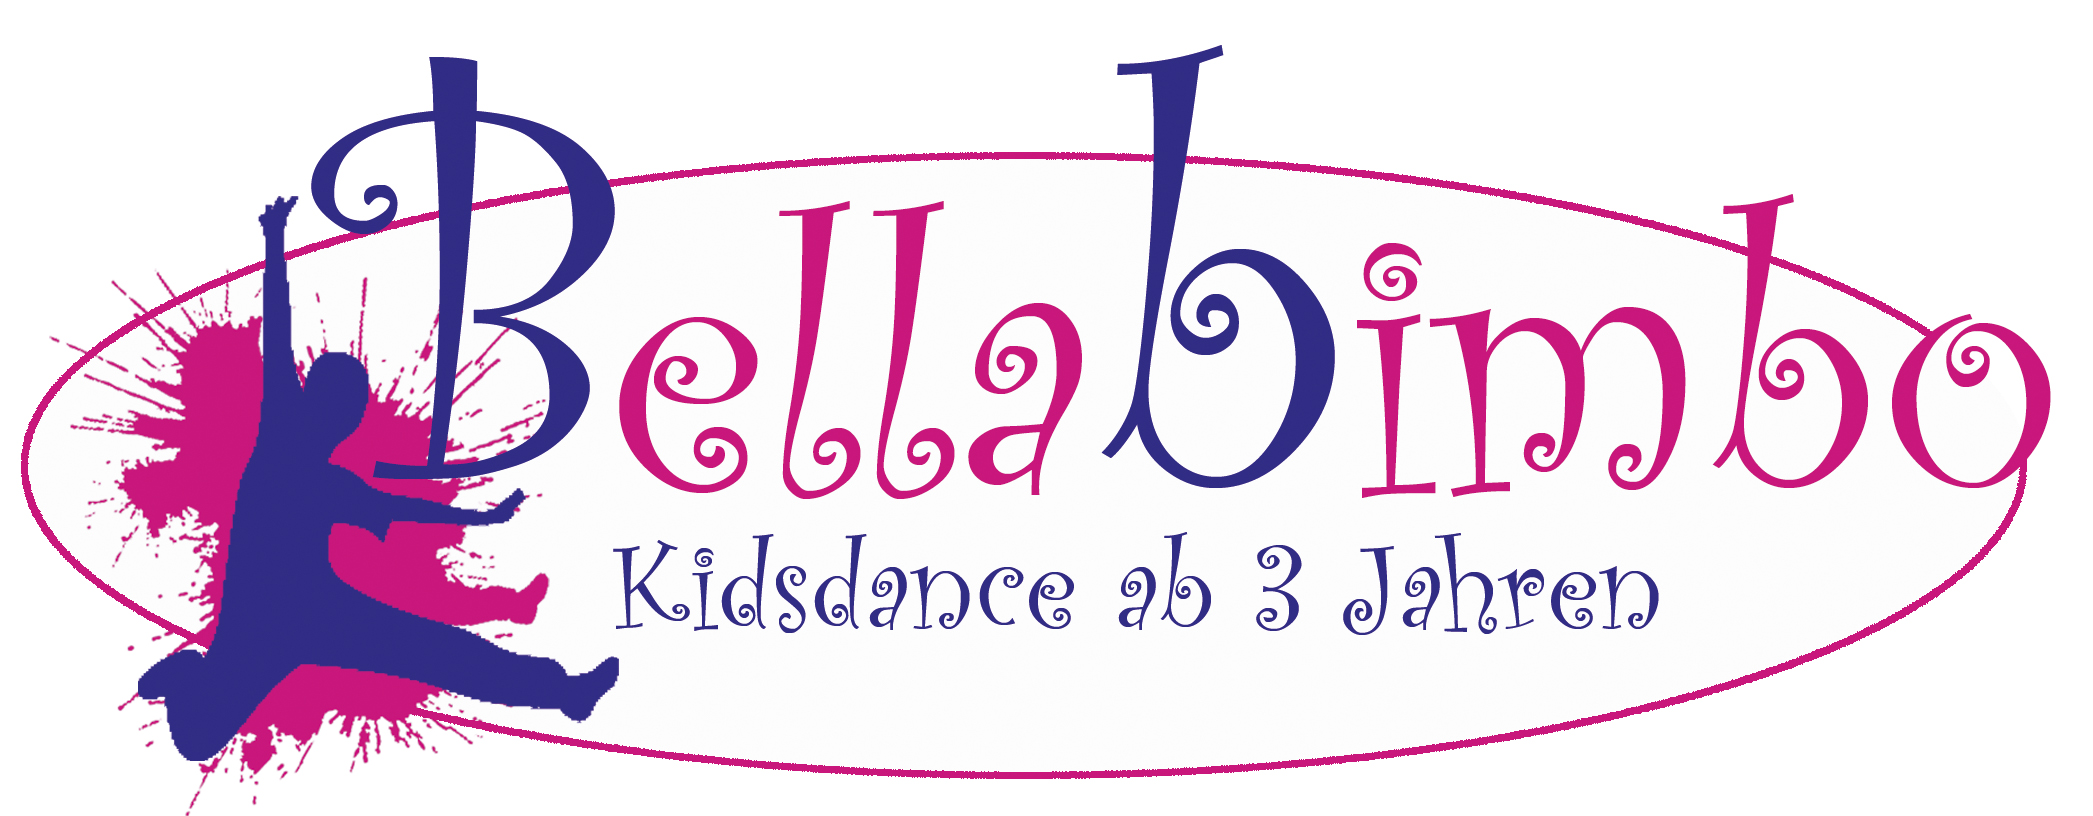 Bellabimbo, Kreativer Kindertanz